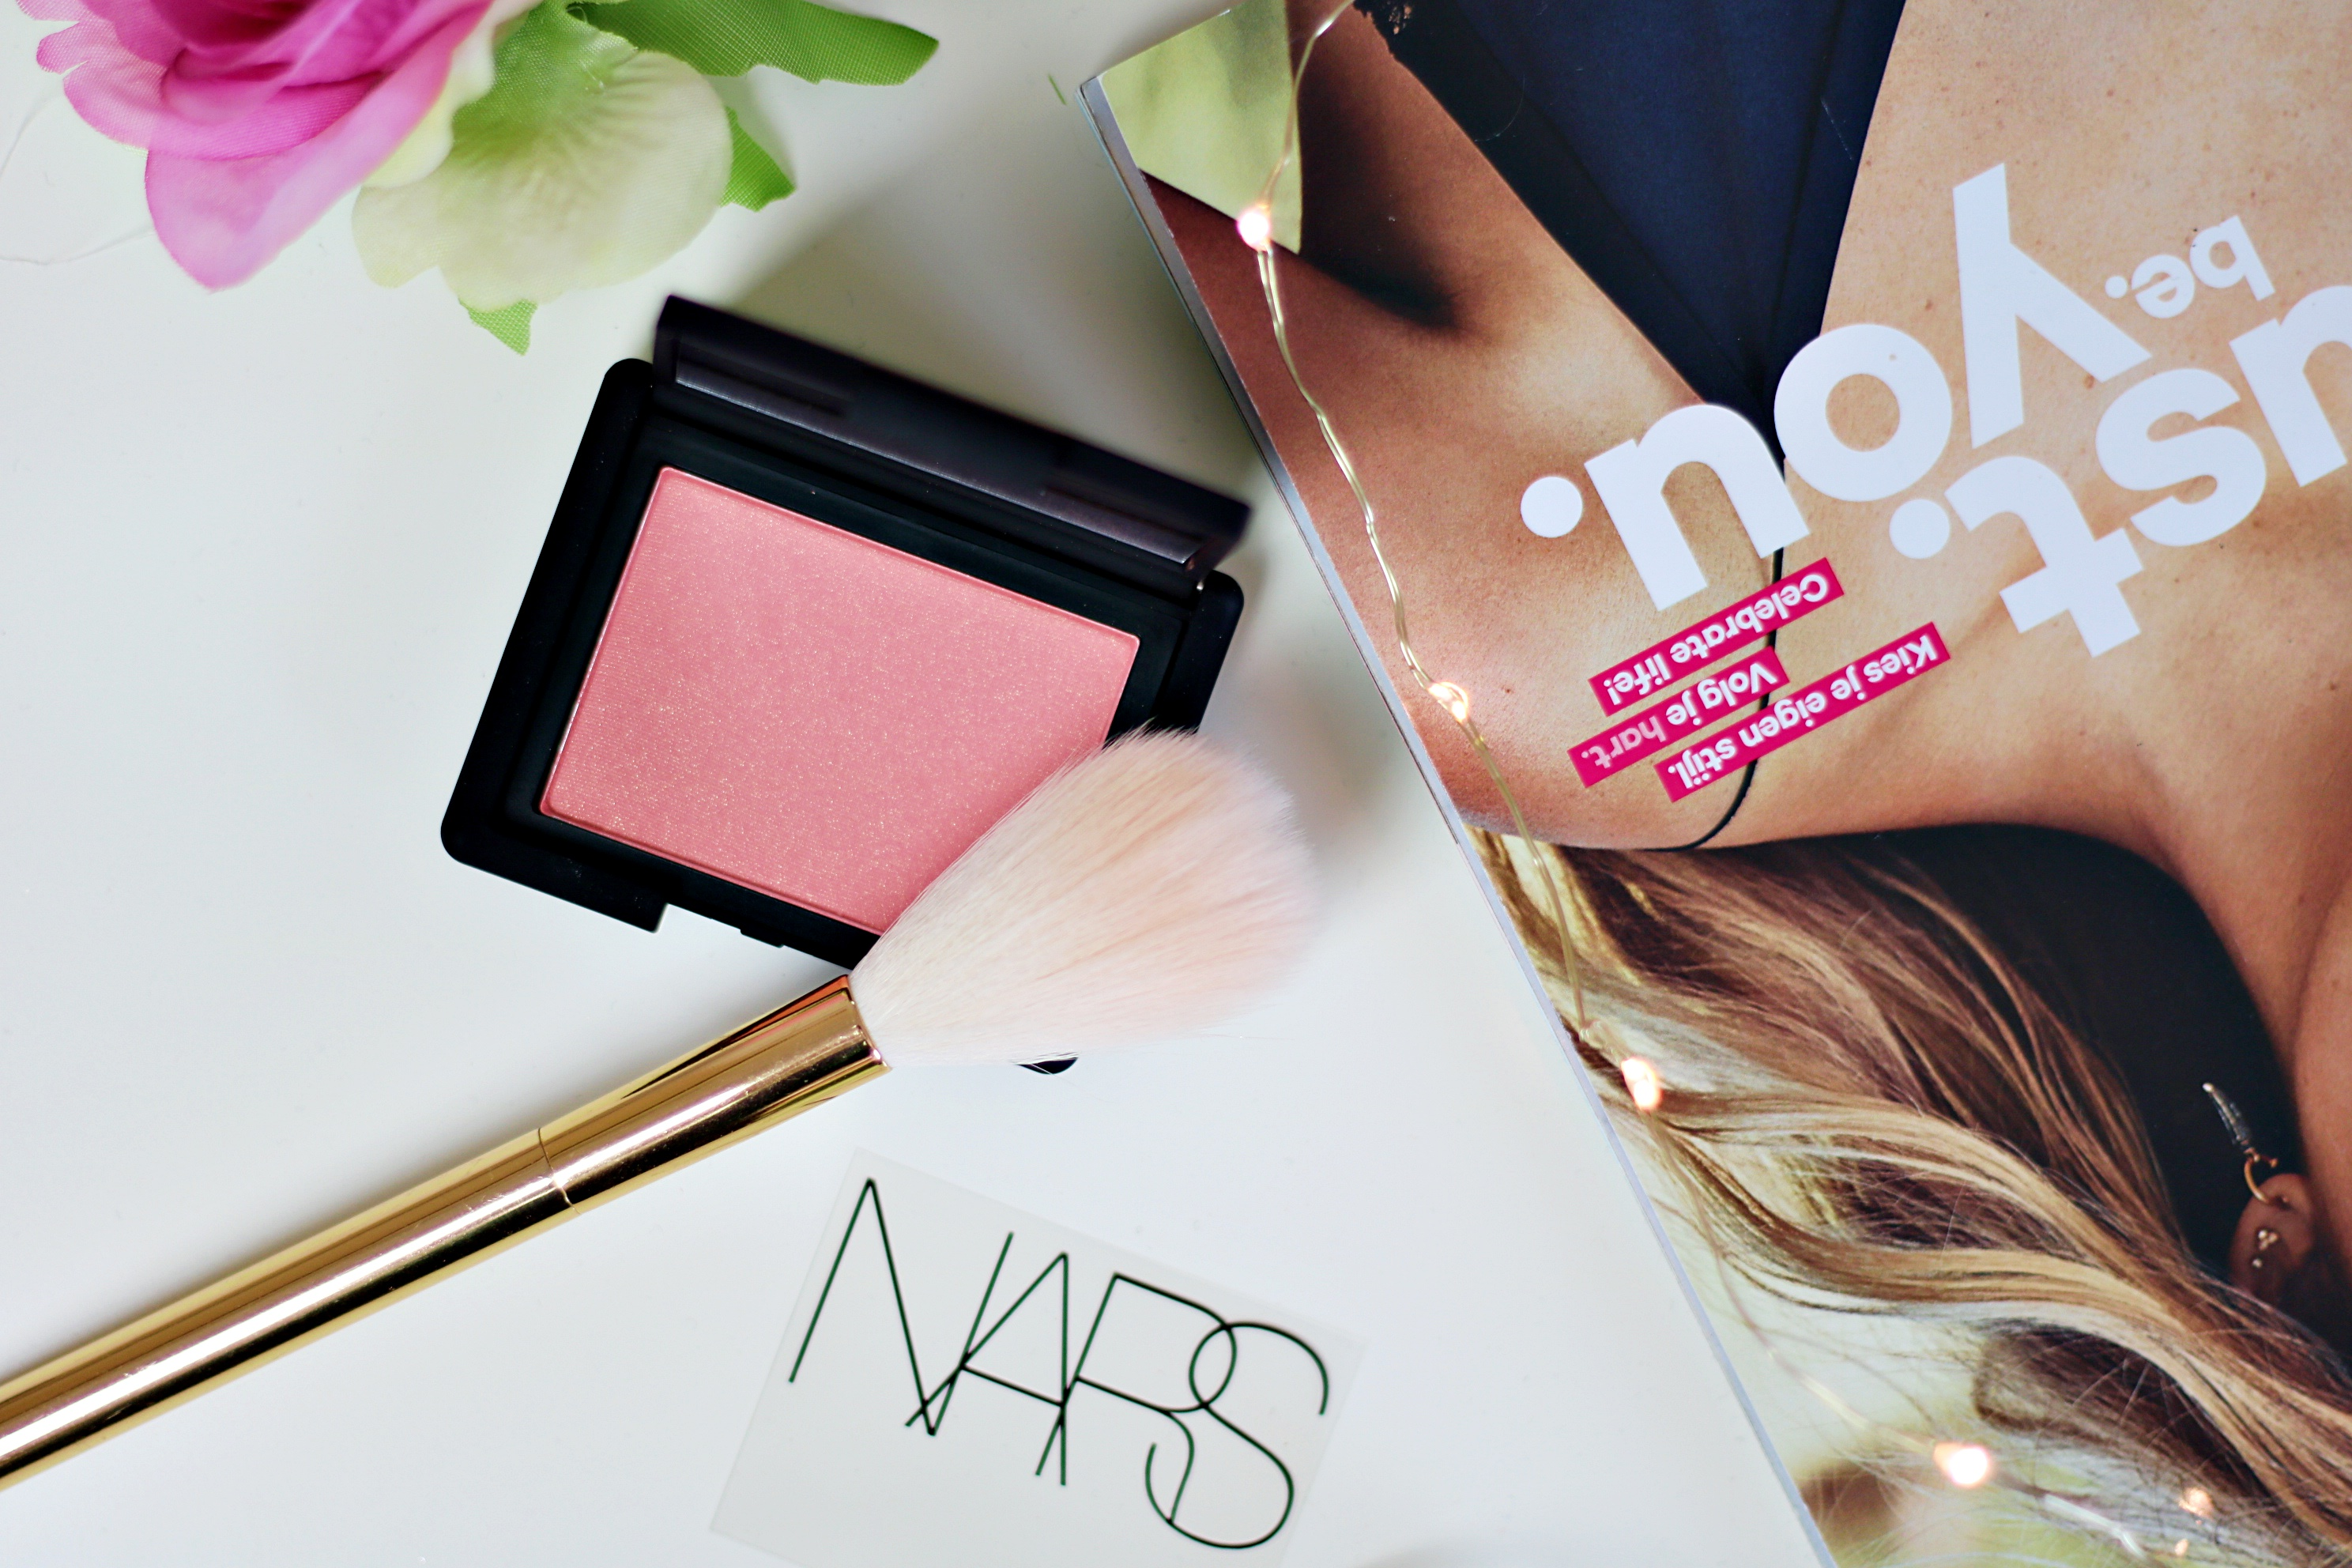 Trying Out Some New Cheeks With The Nars Blush Torrid